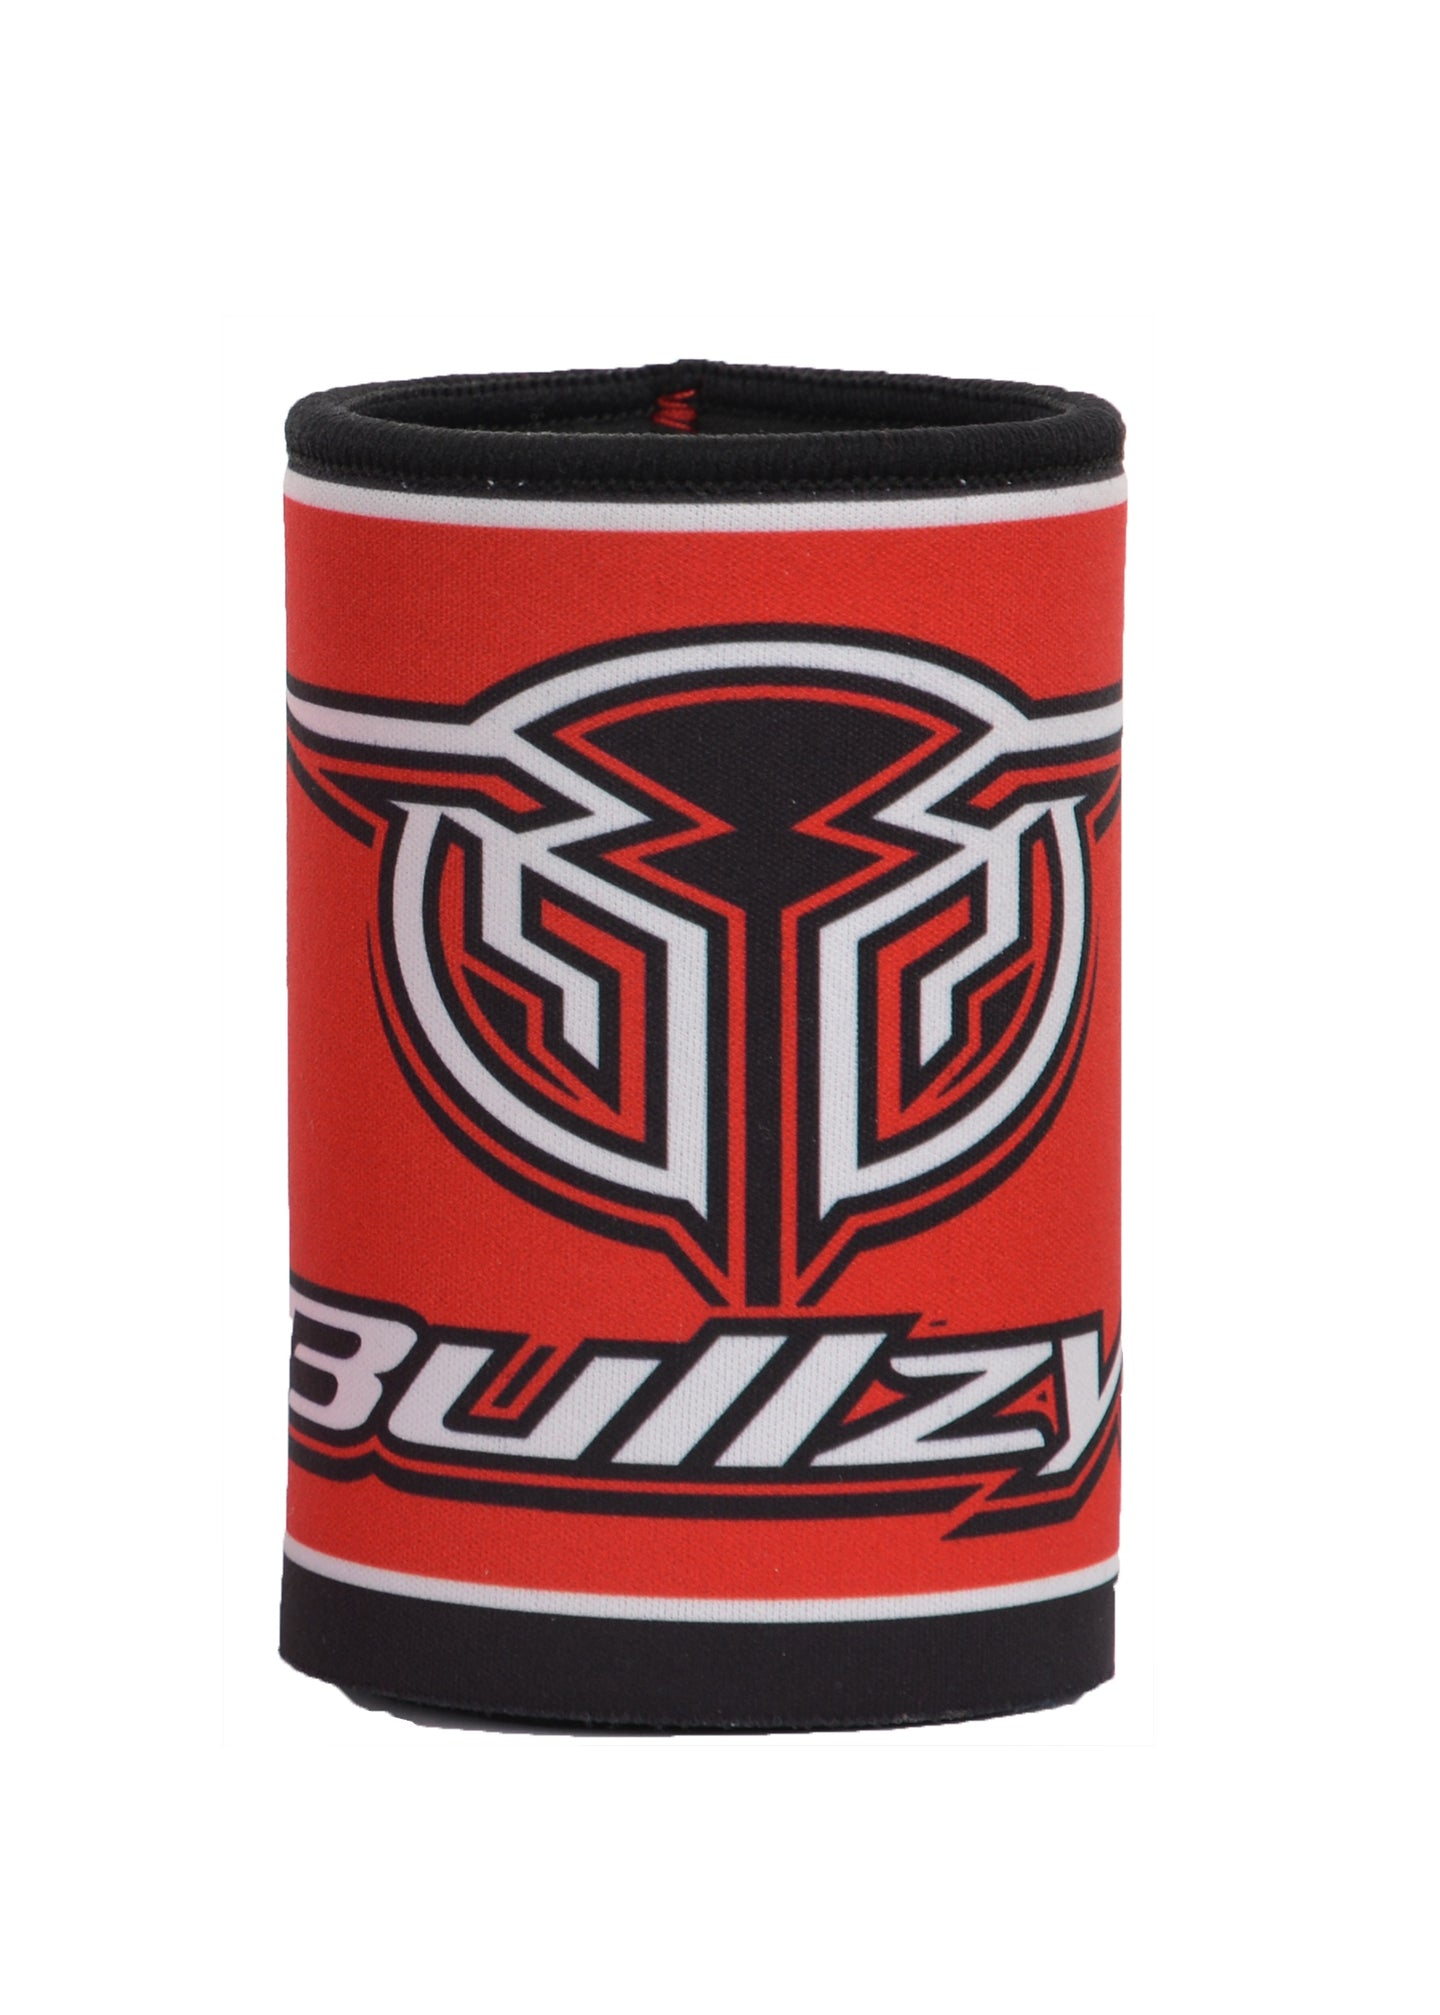 Bullzye Trademark Stubby Holder S20